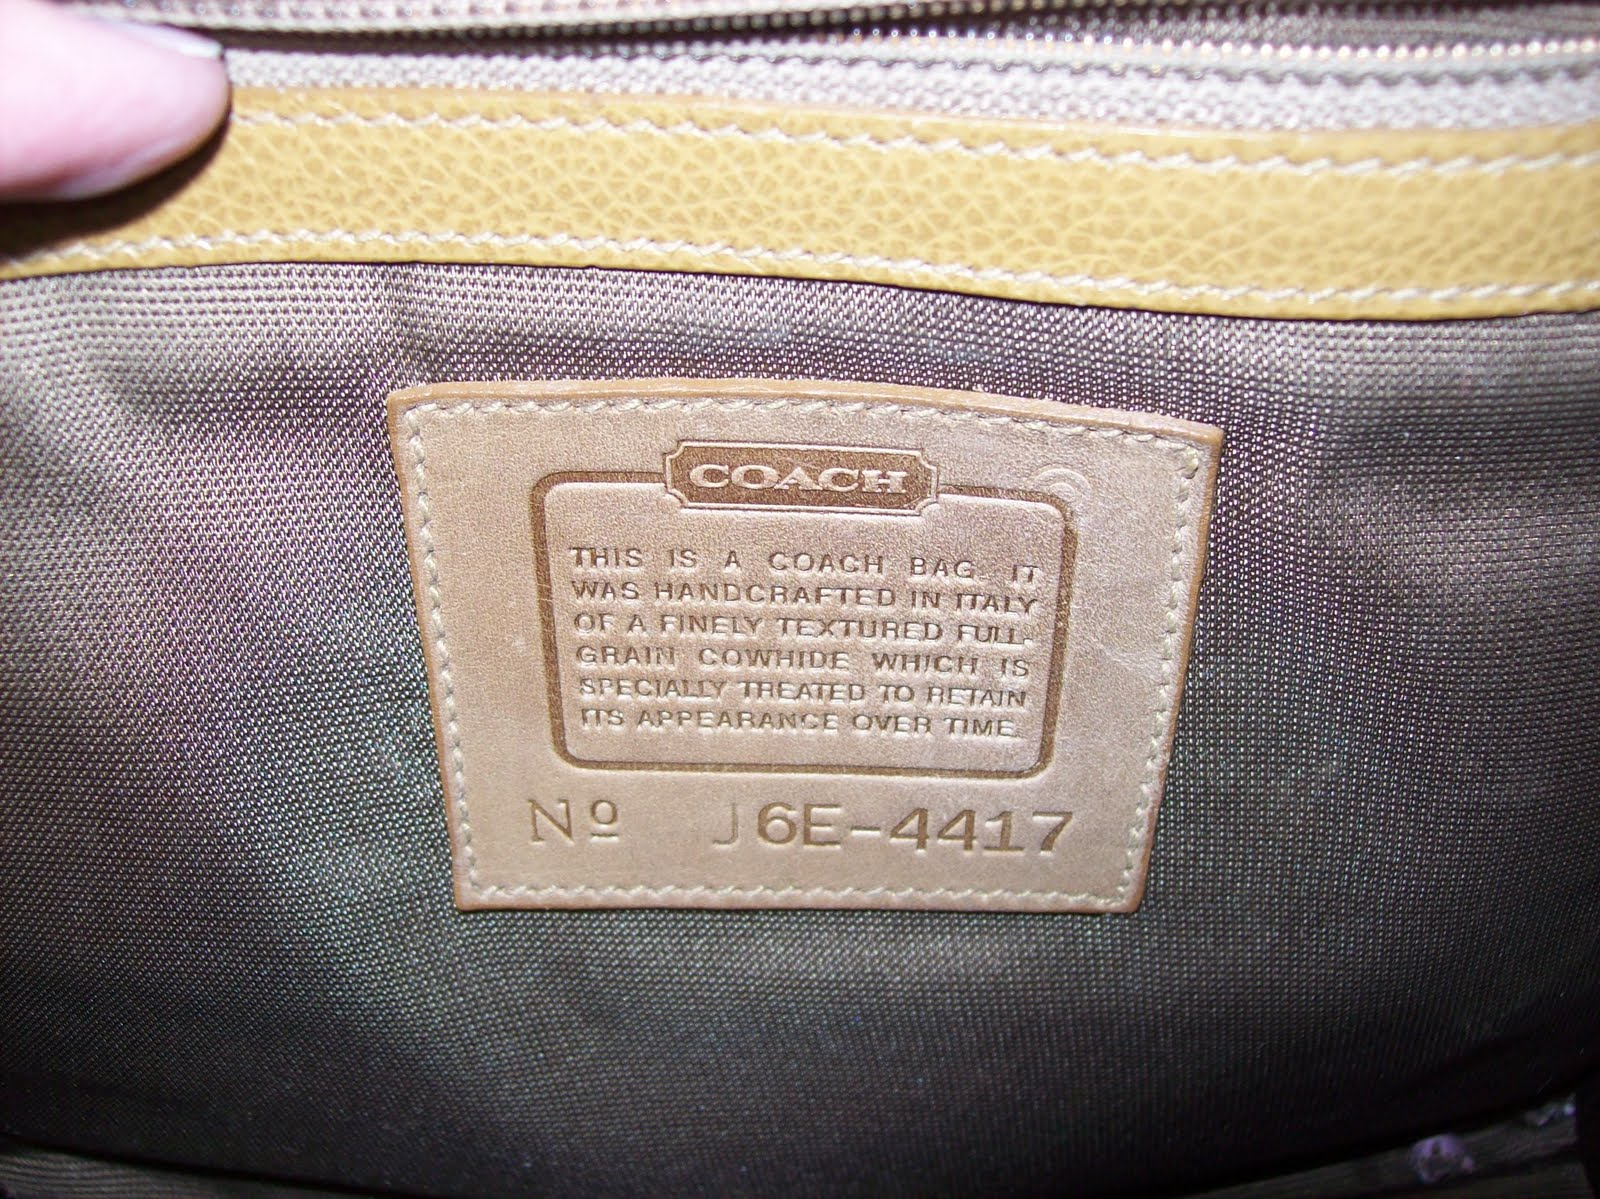 9594708e51dc ... czech coach brown leather shoulder bag how much is a real coach purse  2acf7 0b1bd ...